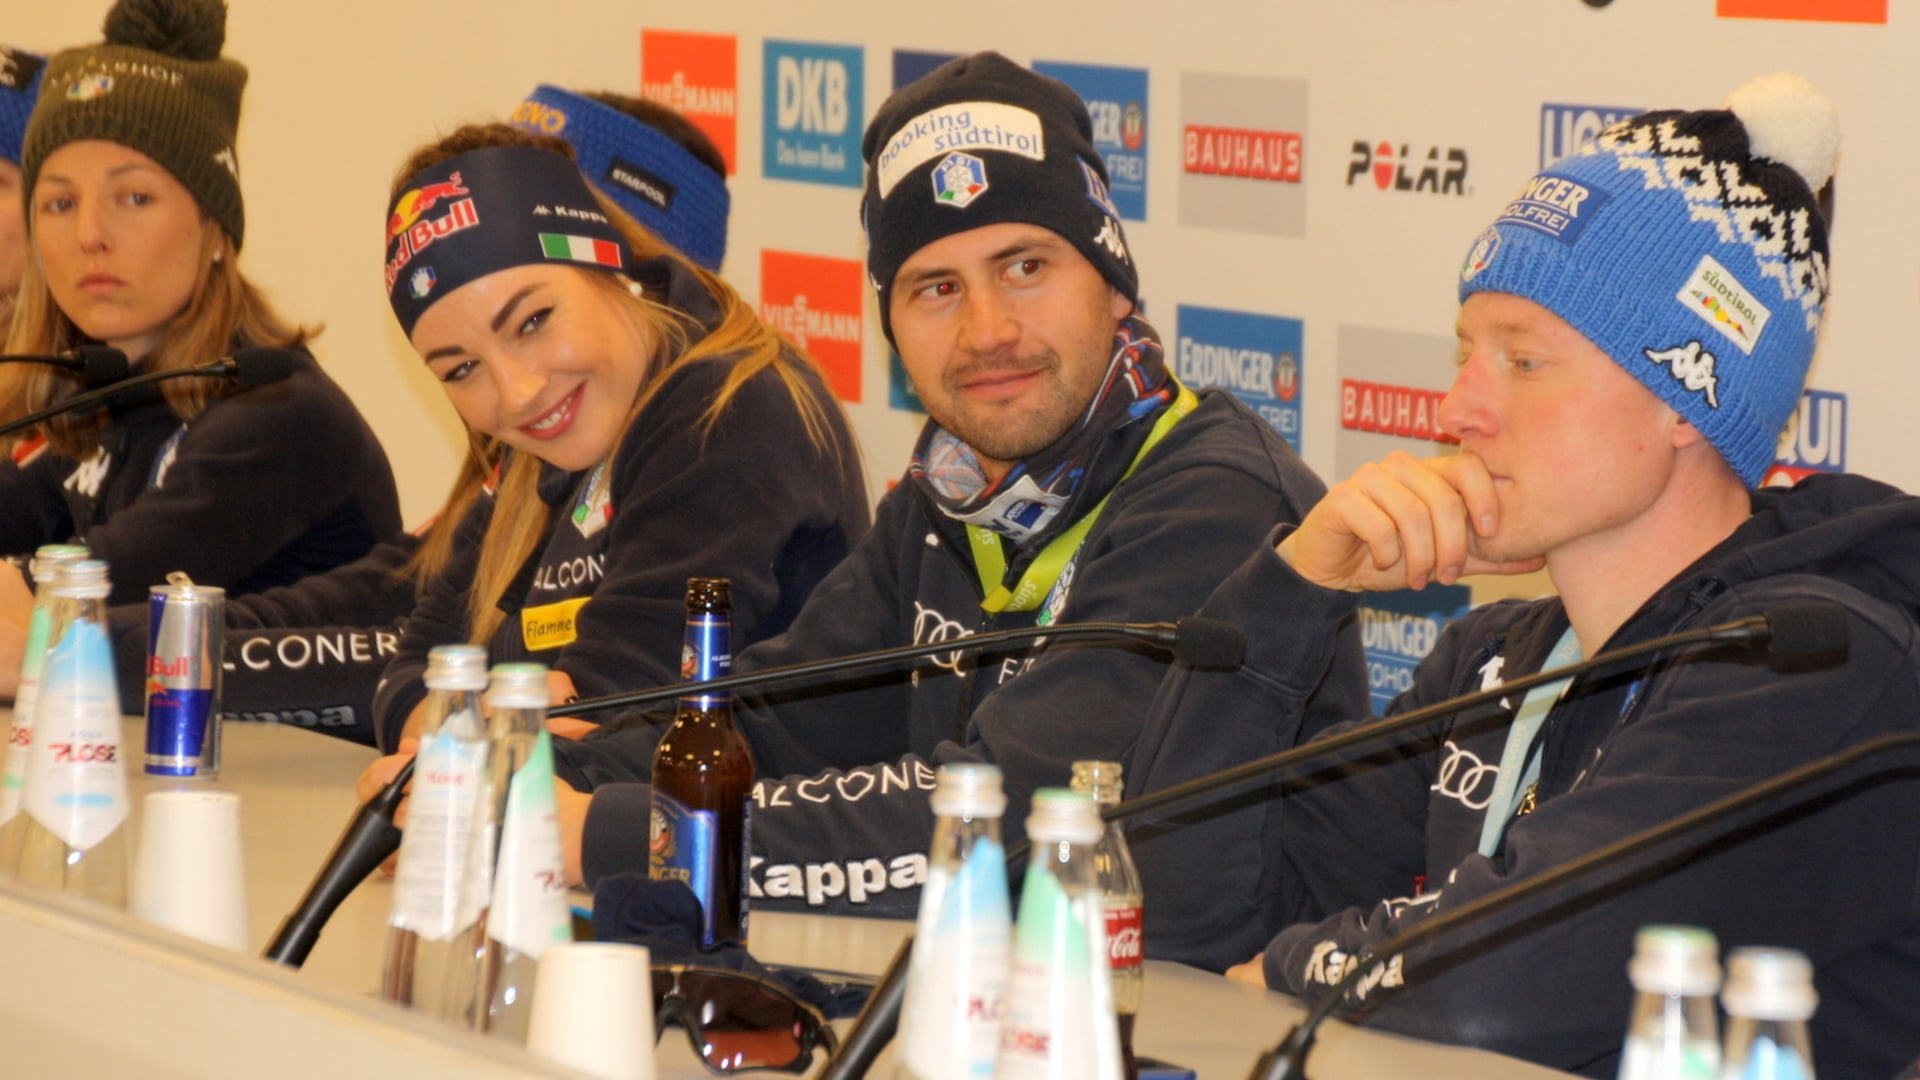 11.02.2020 - The waining comes to an end: Tomorrow the Biathlon World Championships will start in Antholz